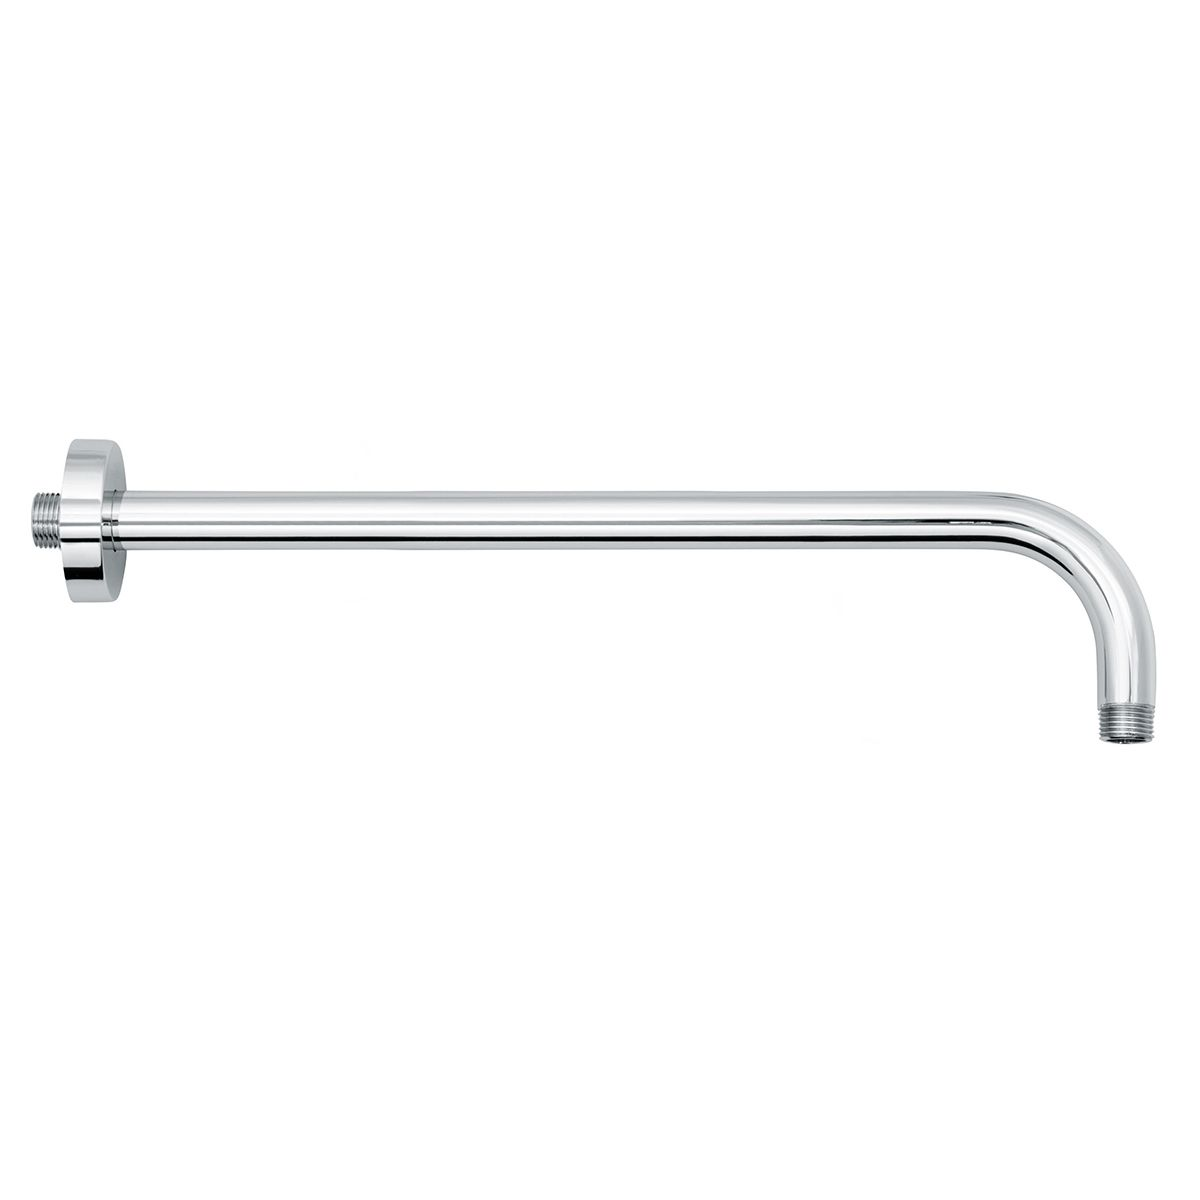 Bathrooms To Love Vema Chrome Round Wall Mounted Shower Arm 400mm